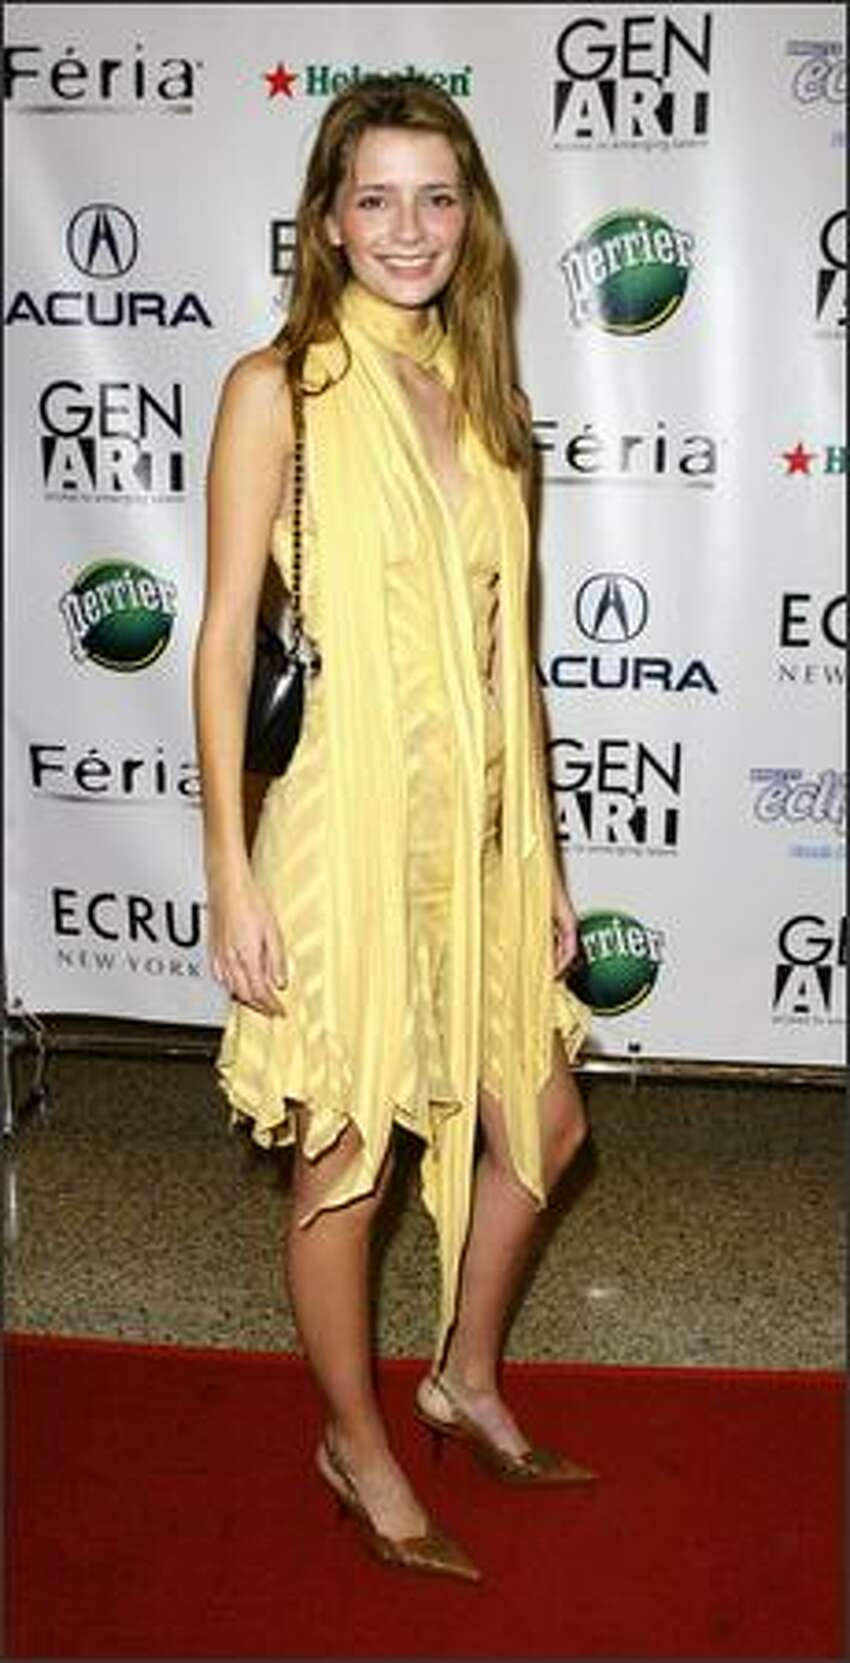 This is the eighth in an occasional series featuring stars and their ever-changing fashion styles. Actress Mischa Barton, 22, arrives at Gen Art Styles 2003 fashion and awards show at the Hammerstein Ballroom in New York, April 22, 2003.